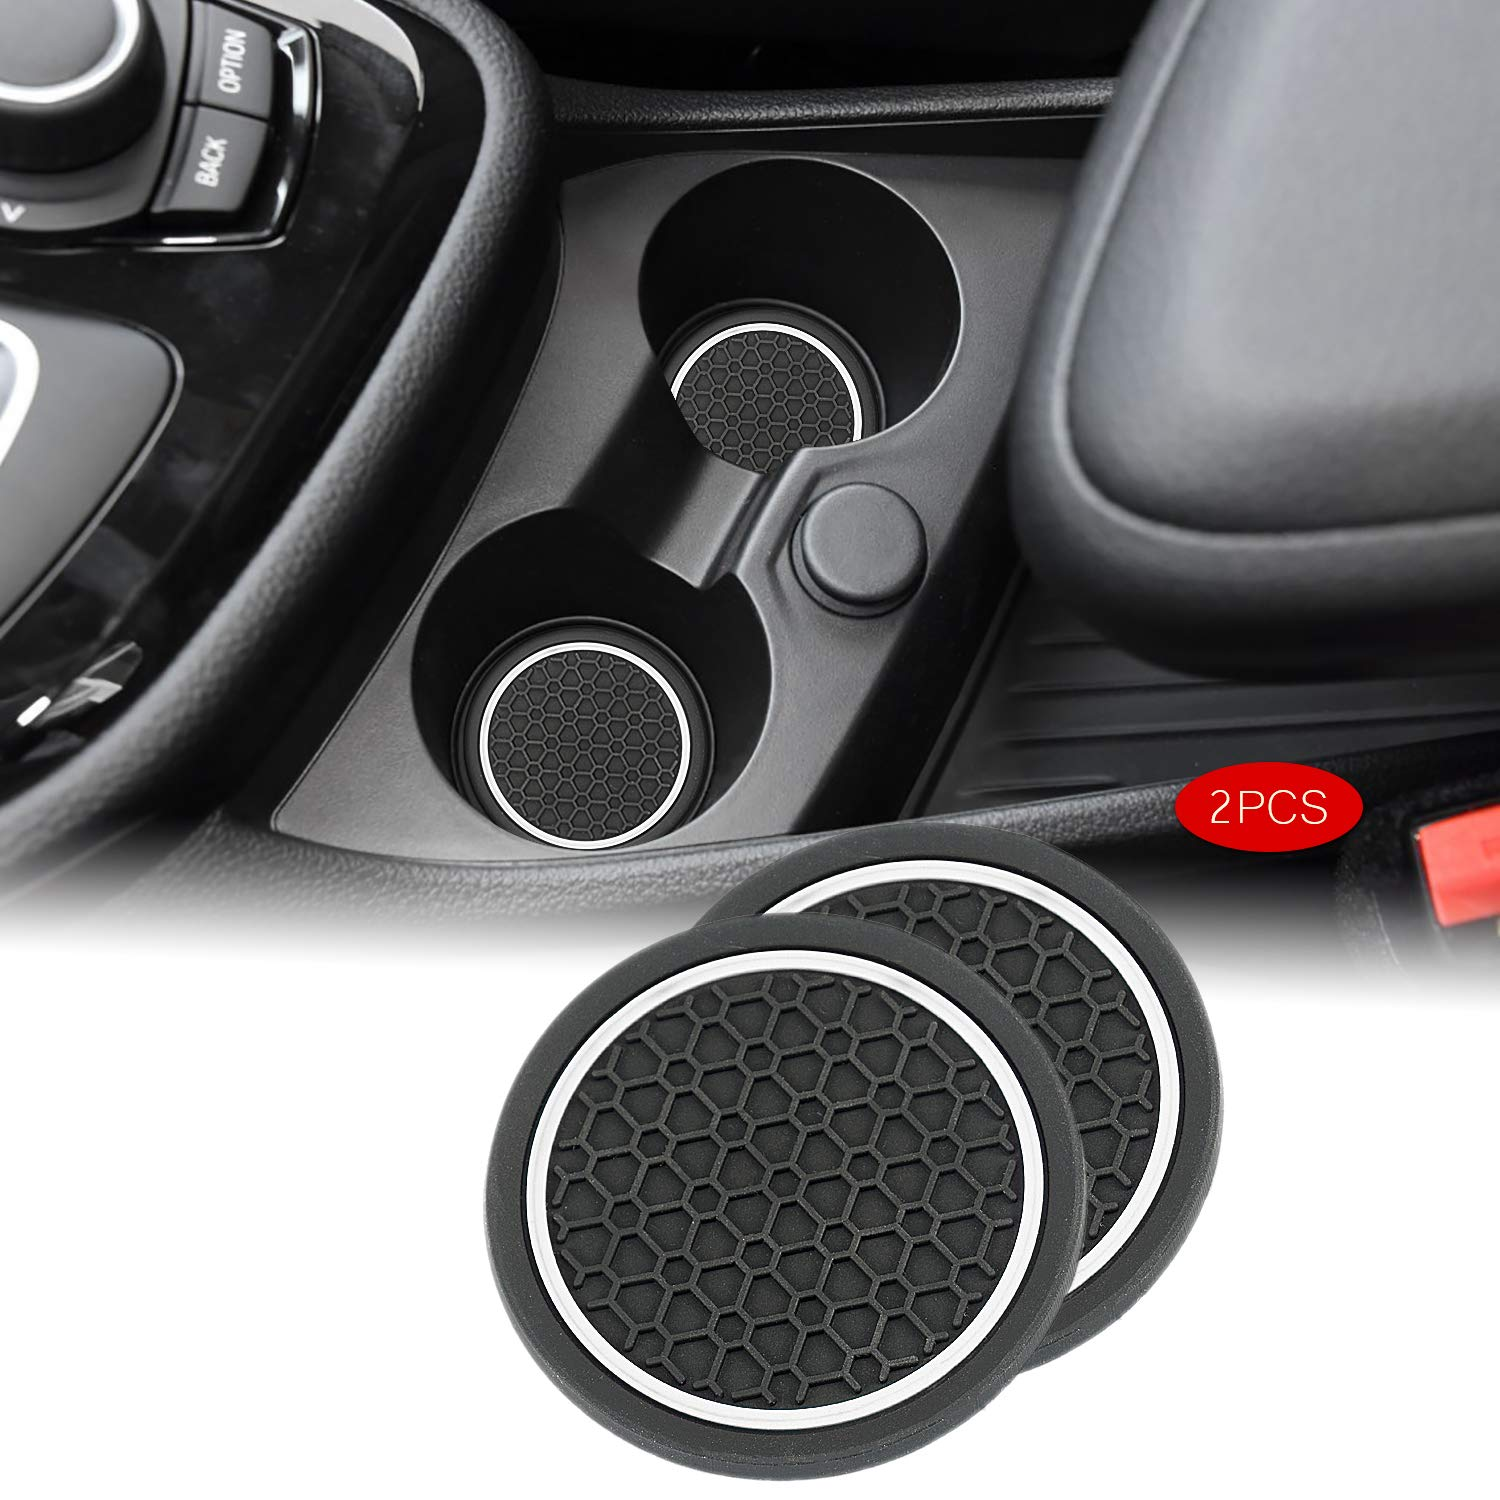 2.75 Inch Diameter Cup Holder Pad Car//Vehicle Interior Accessories Anti Slip Cup Holder Coaster Can Insert Mats 2PCS for BMW Accessories White